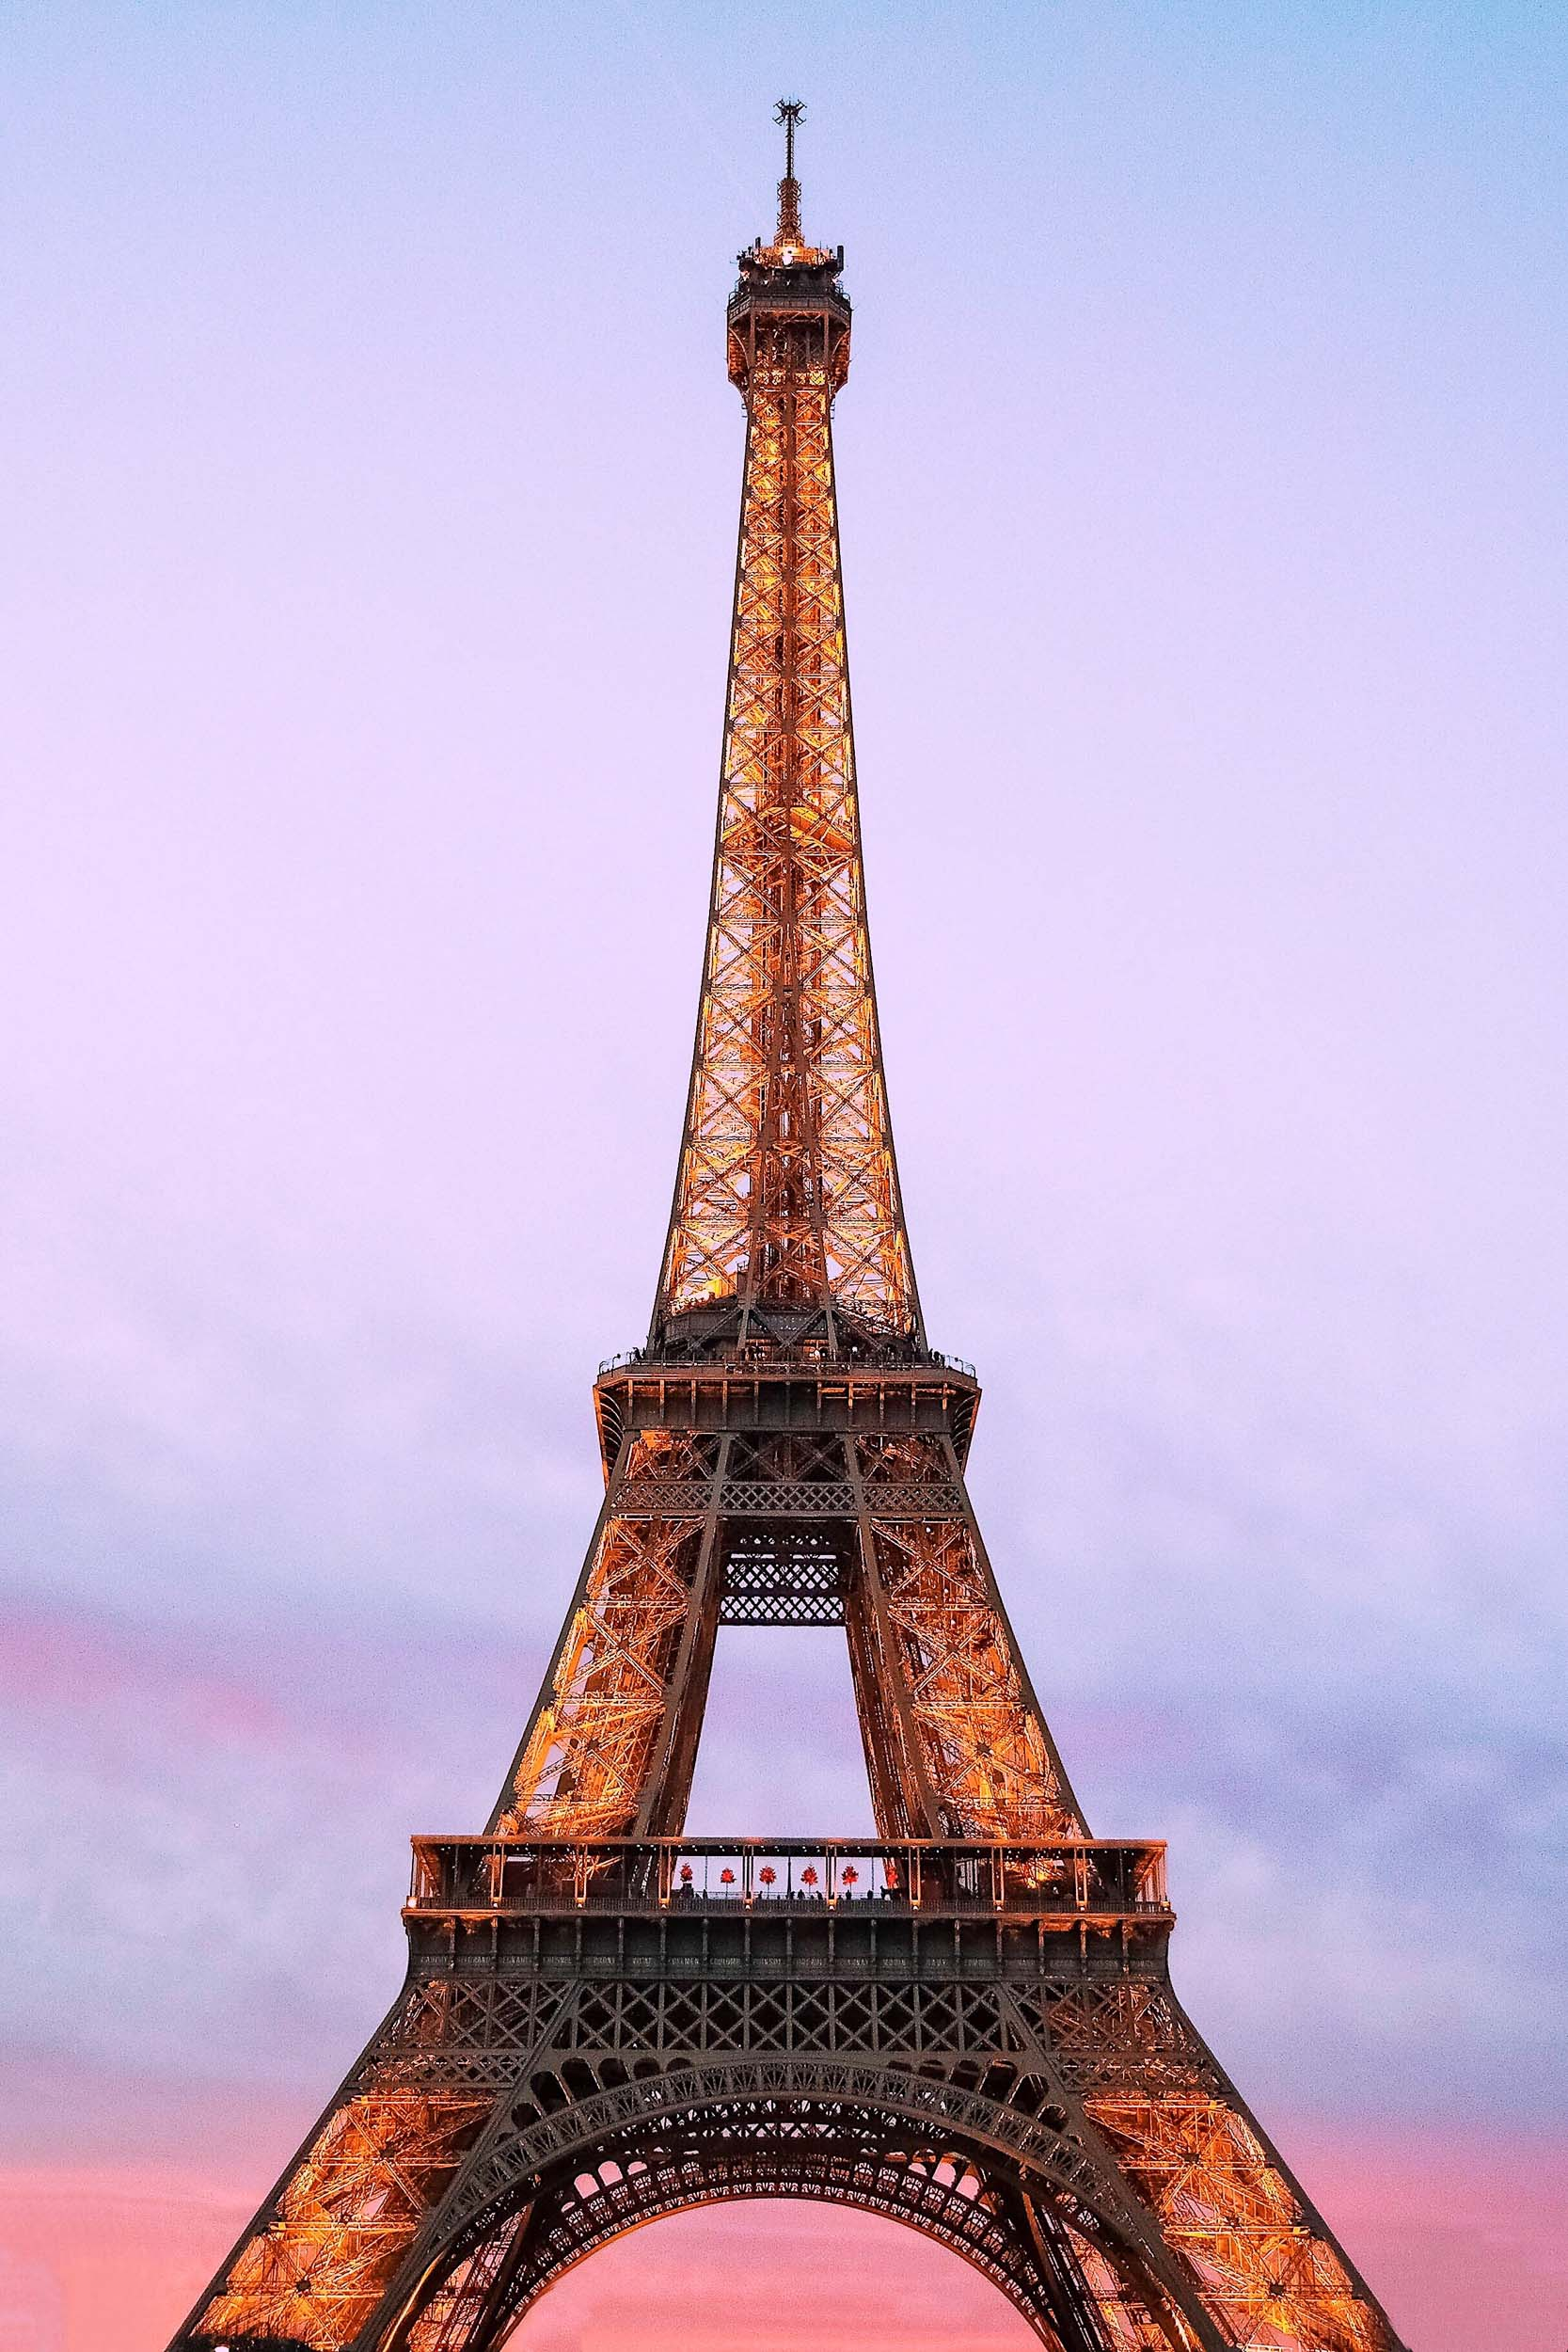 2 days in Paris, 3 days in Paris, 4 days in Paris, or any amount of days in Paris - all Paris itineraries must include a visit to the Eiffel Tower at night